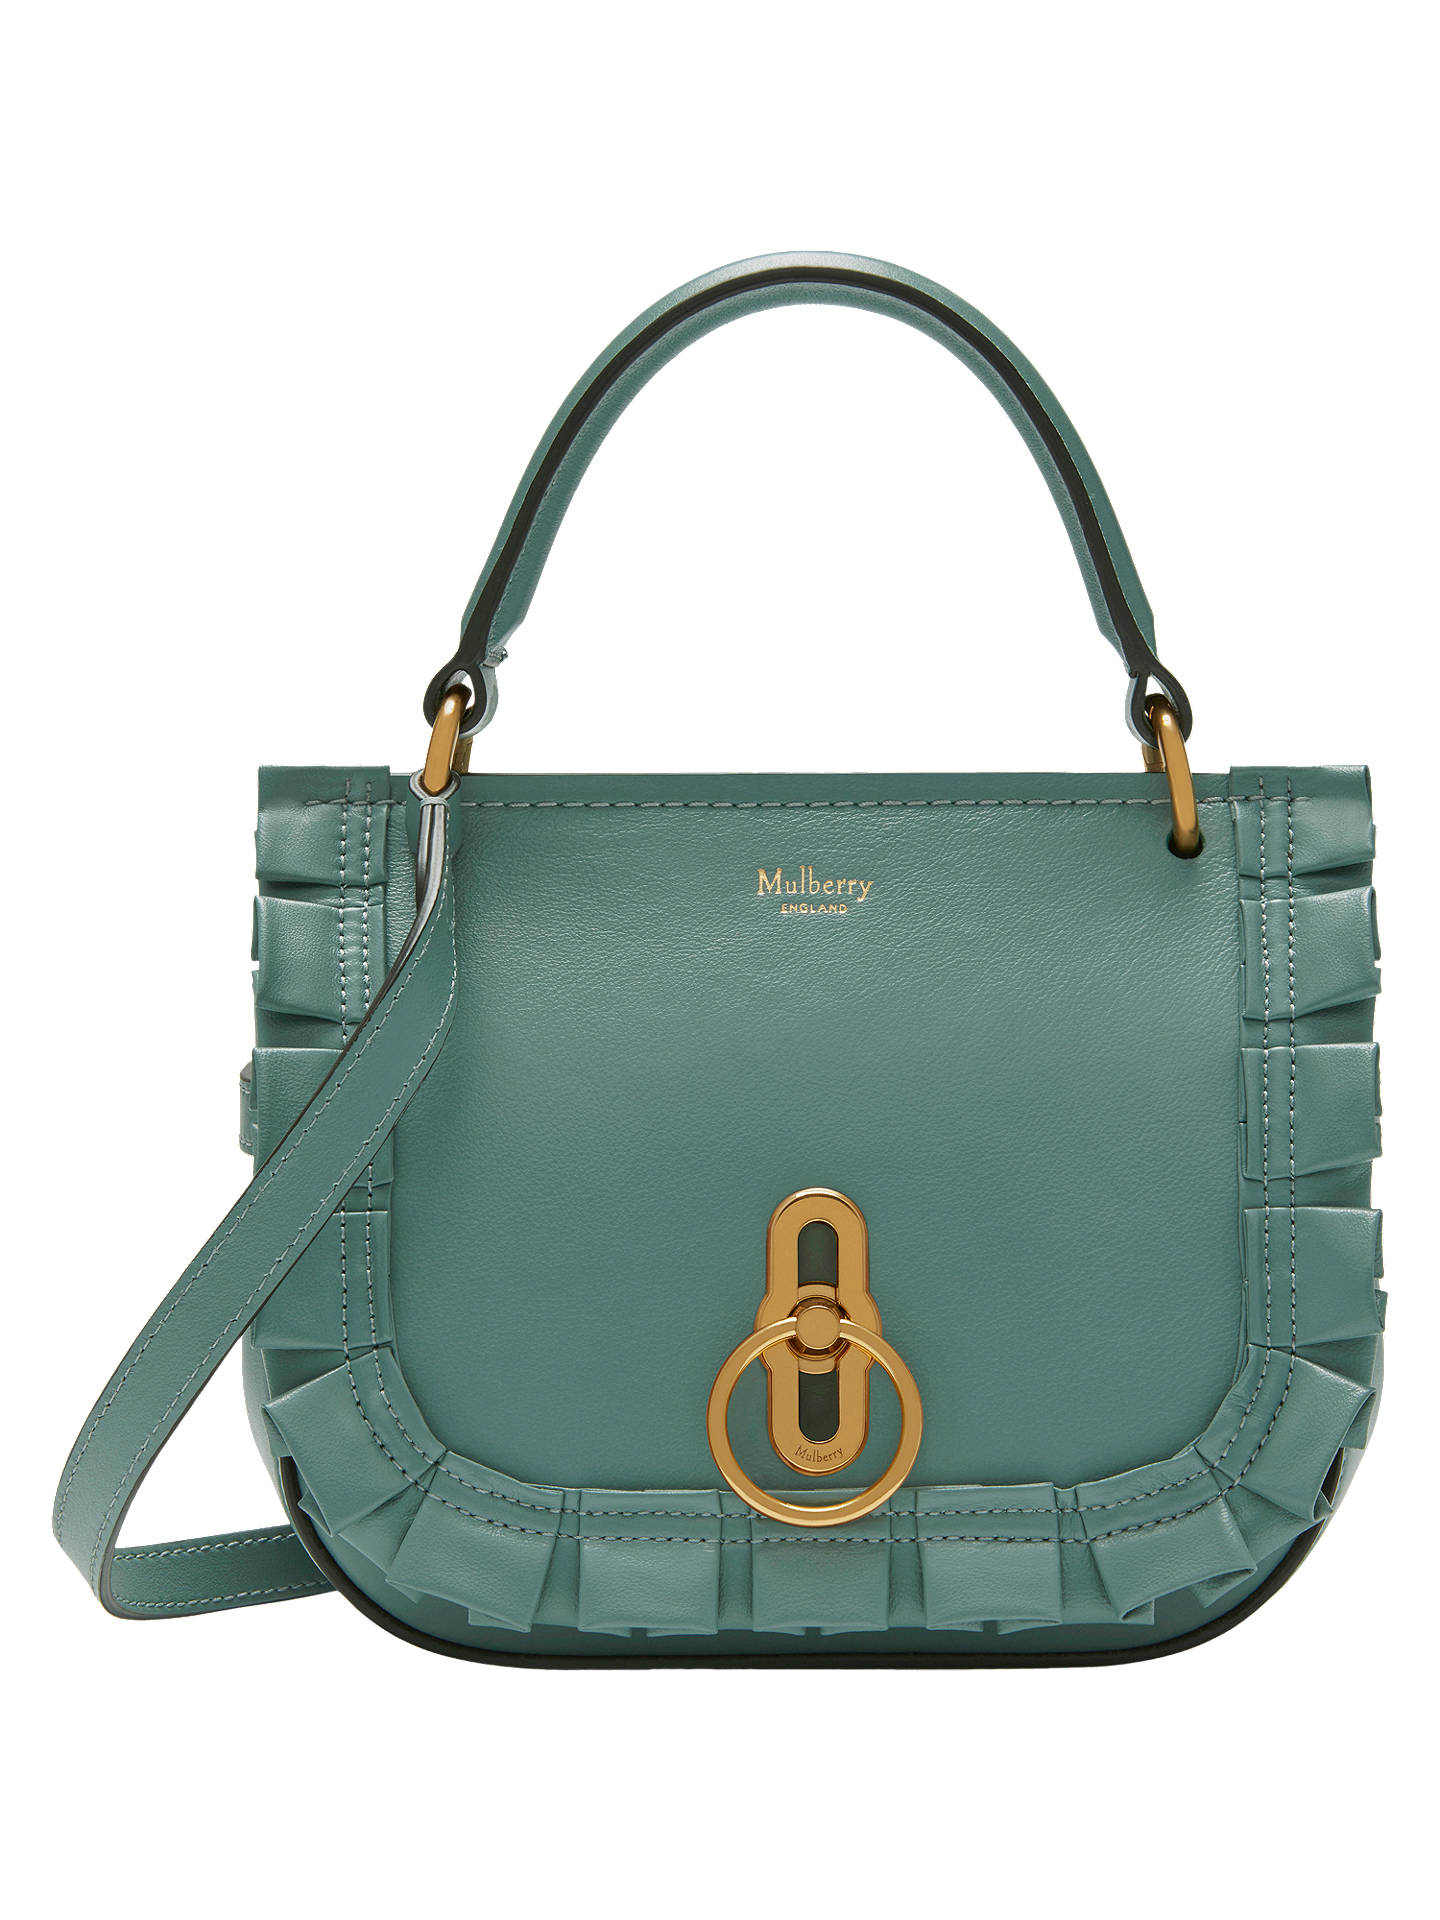 89b4173421 Mulberry Amberley Leather Small Frill Edge Satchel at John Lewis ...